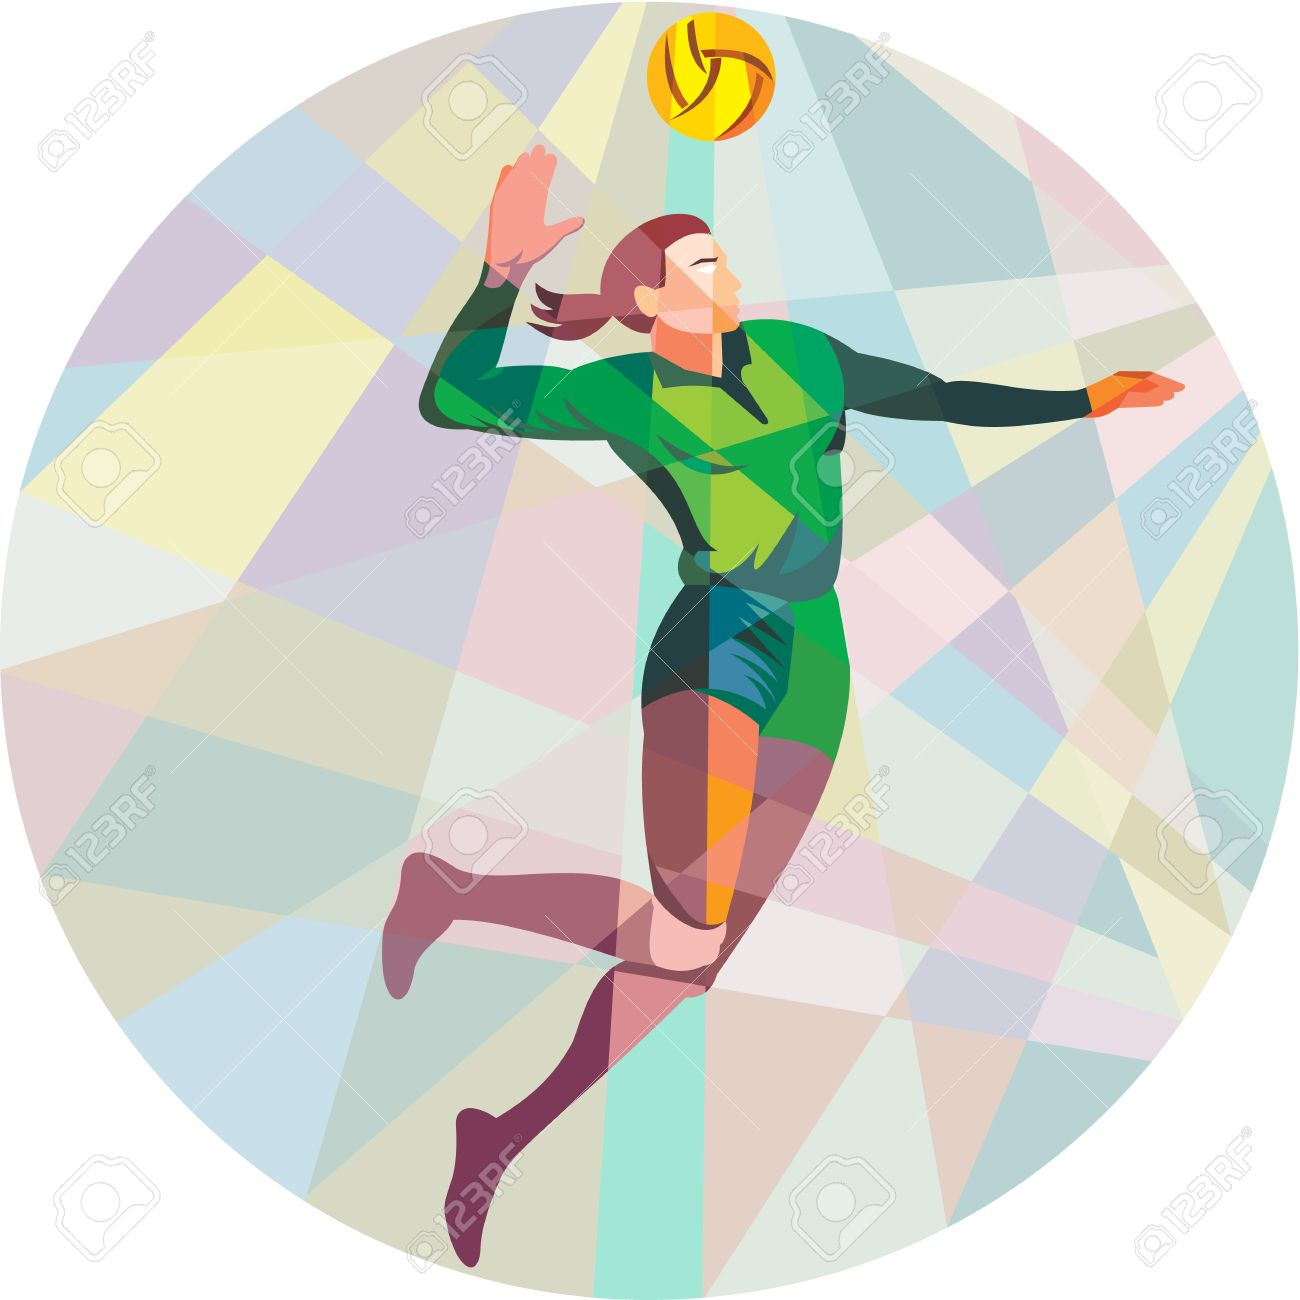 Low polygon style illustration of a volleyball player spiker jumping spiking hitting ball viewed from the side set inside circle on isolated background. - 40080548